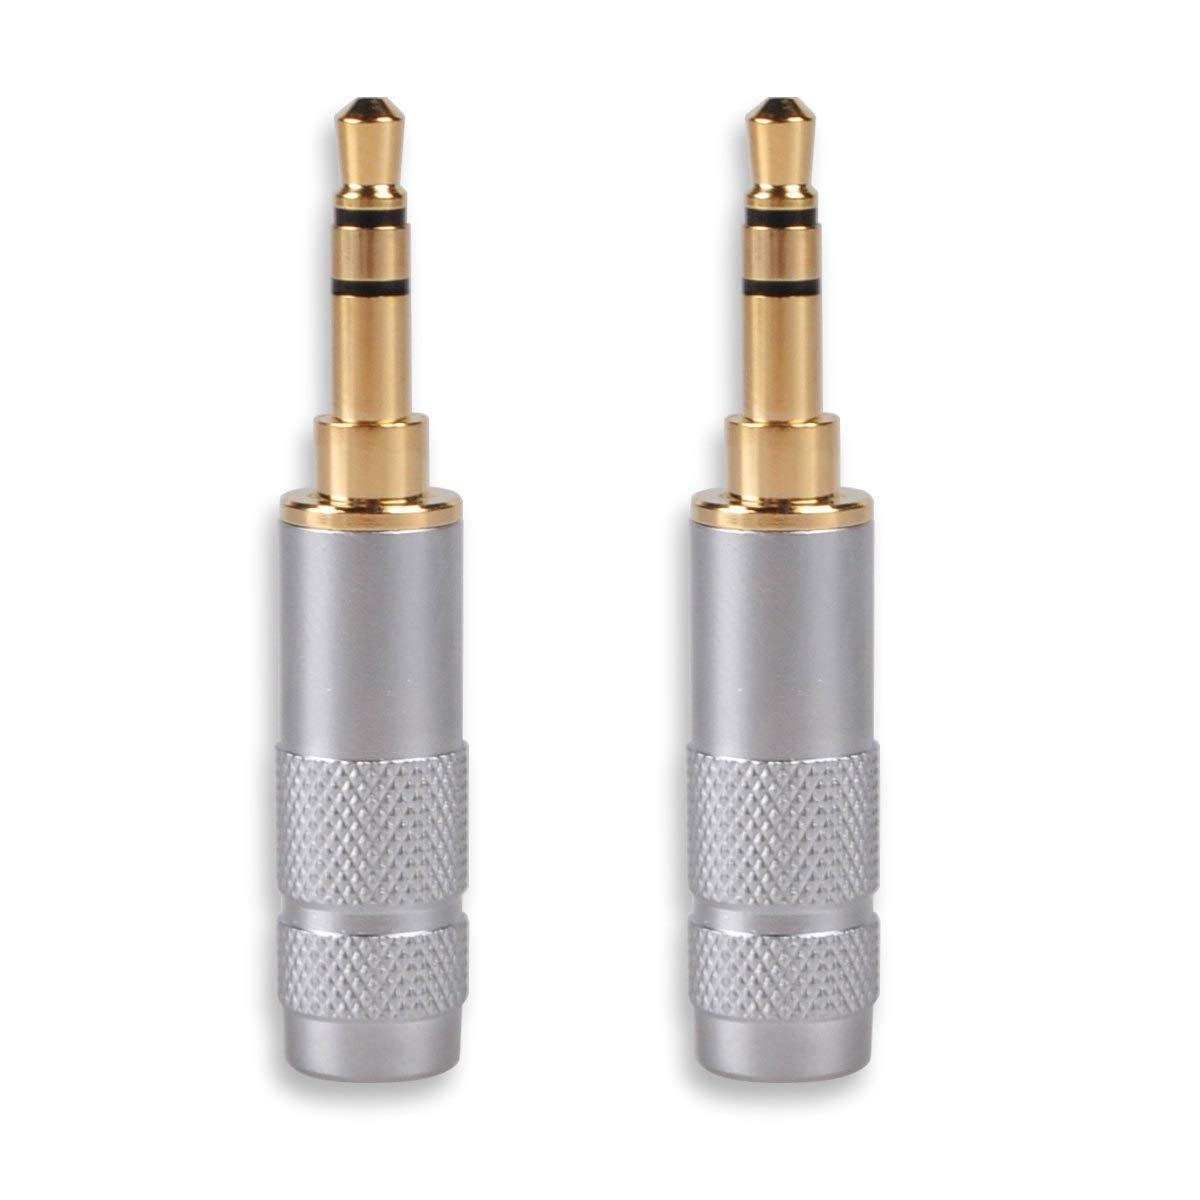 HTTX 3.5mm Audio Stereo Male Jack Soldering Repair Replacement Adapter for TRS Headphone Gold Plated 2-Pack